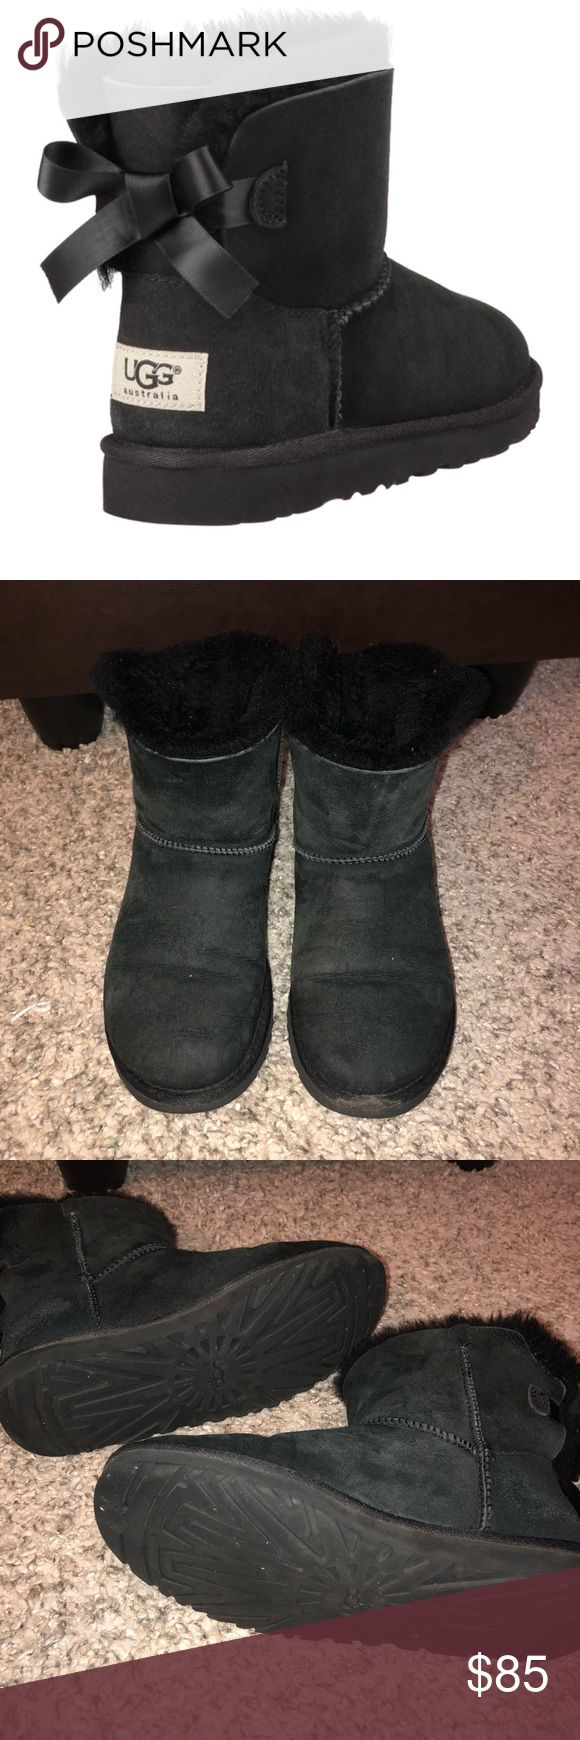 Ugg mini bailey bow boots - Ugg Bailey bow boots - Used but still in great condition - Still lots of wear left - Waterproof guard  - Will clean well before shipping - Offers and questions welcome! - Willing to negotiate :) UGG Shoes Winter & Rain Boots